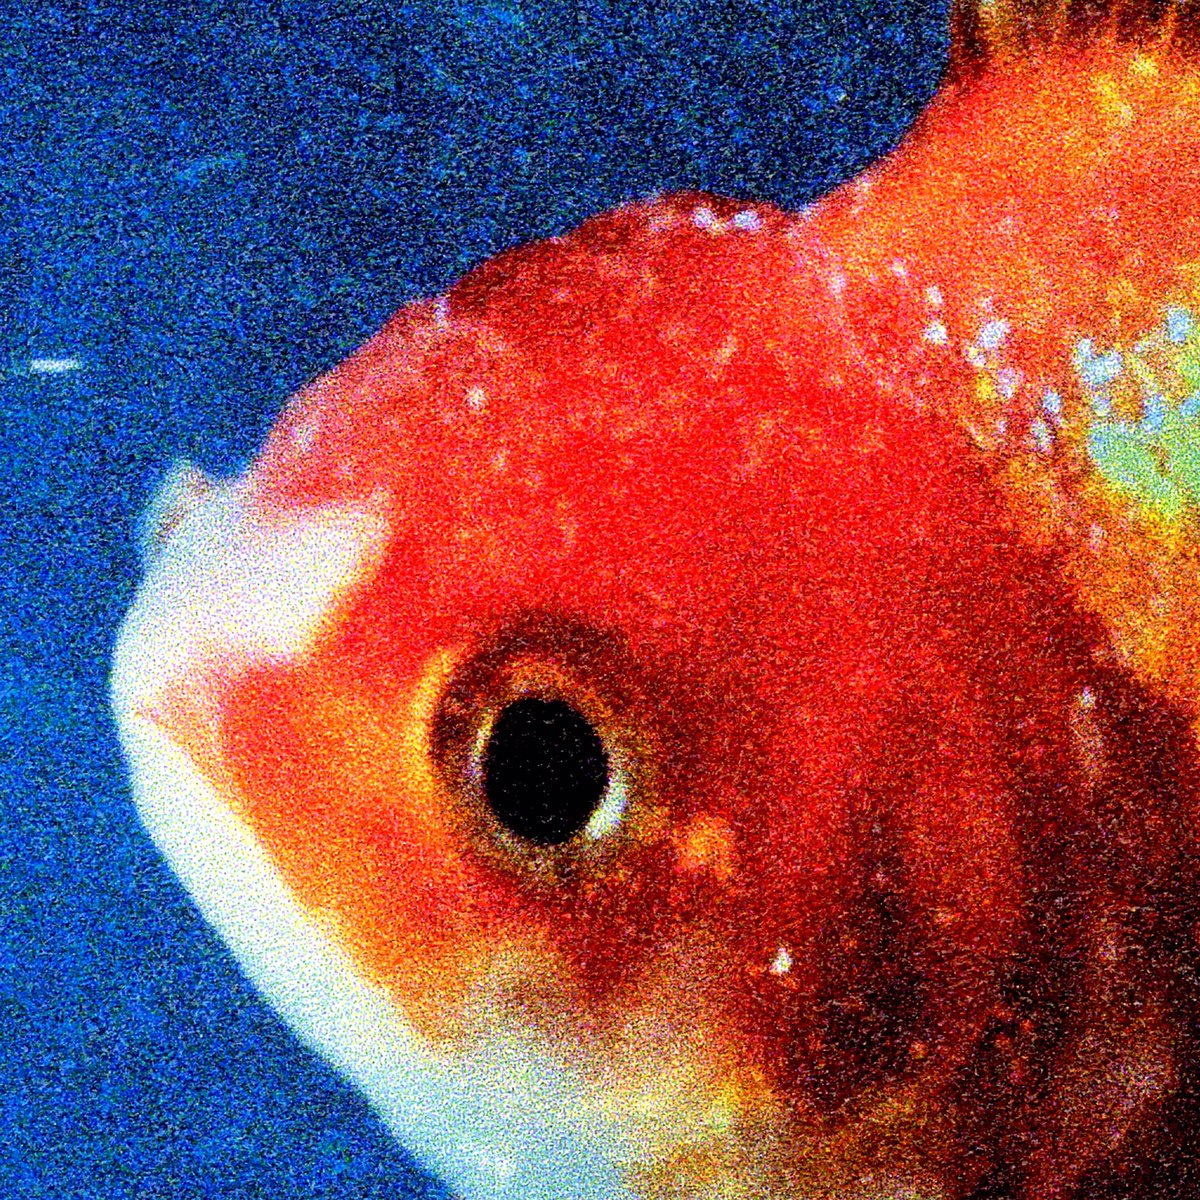 Vince Staples Big Fish Theory Album Cover